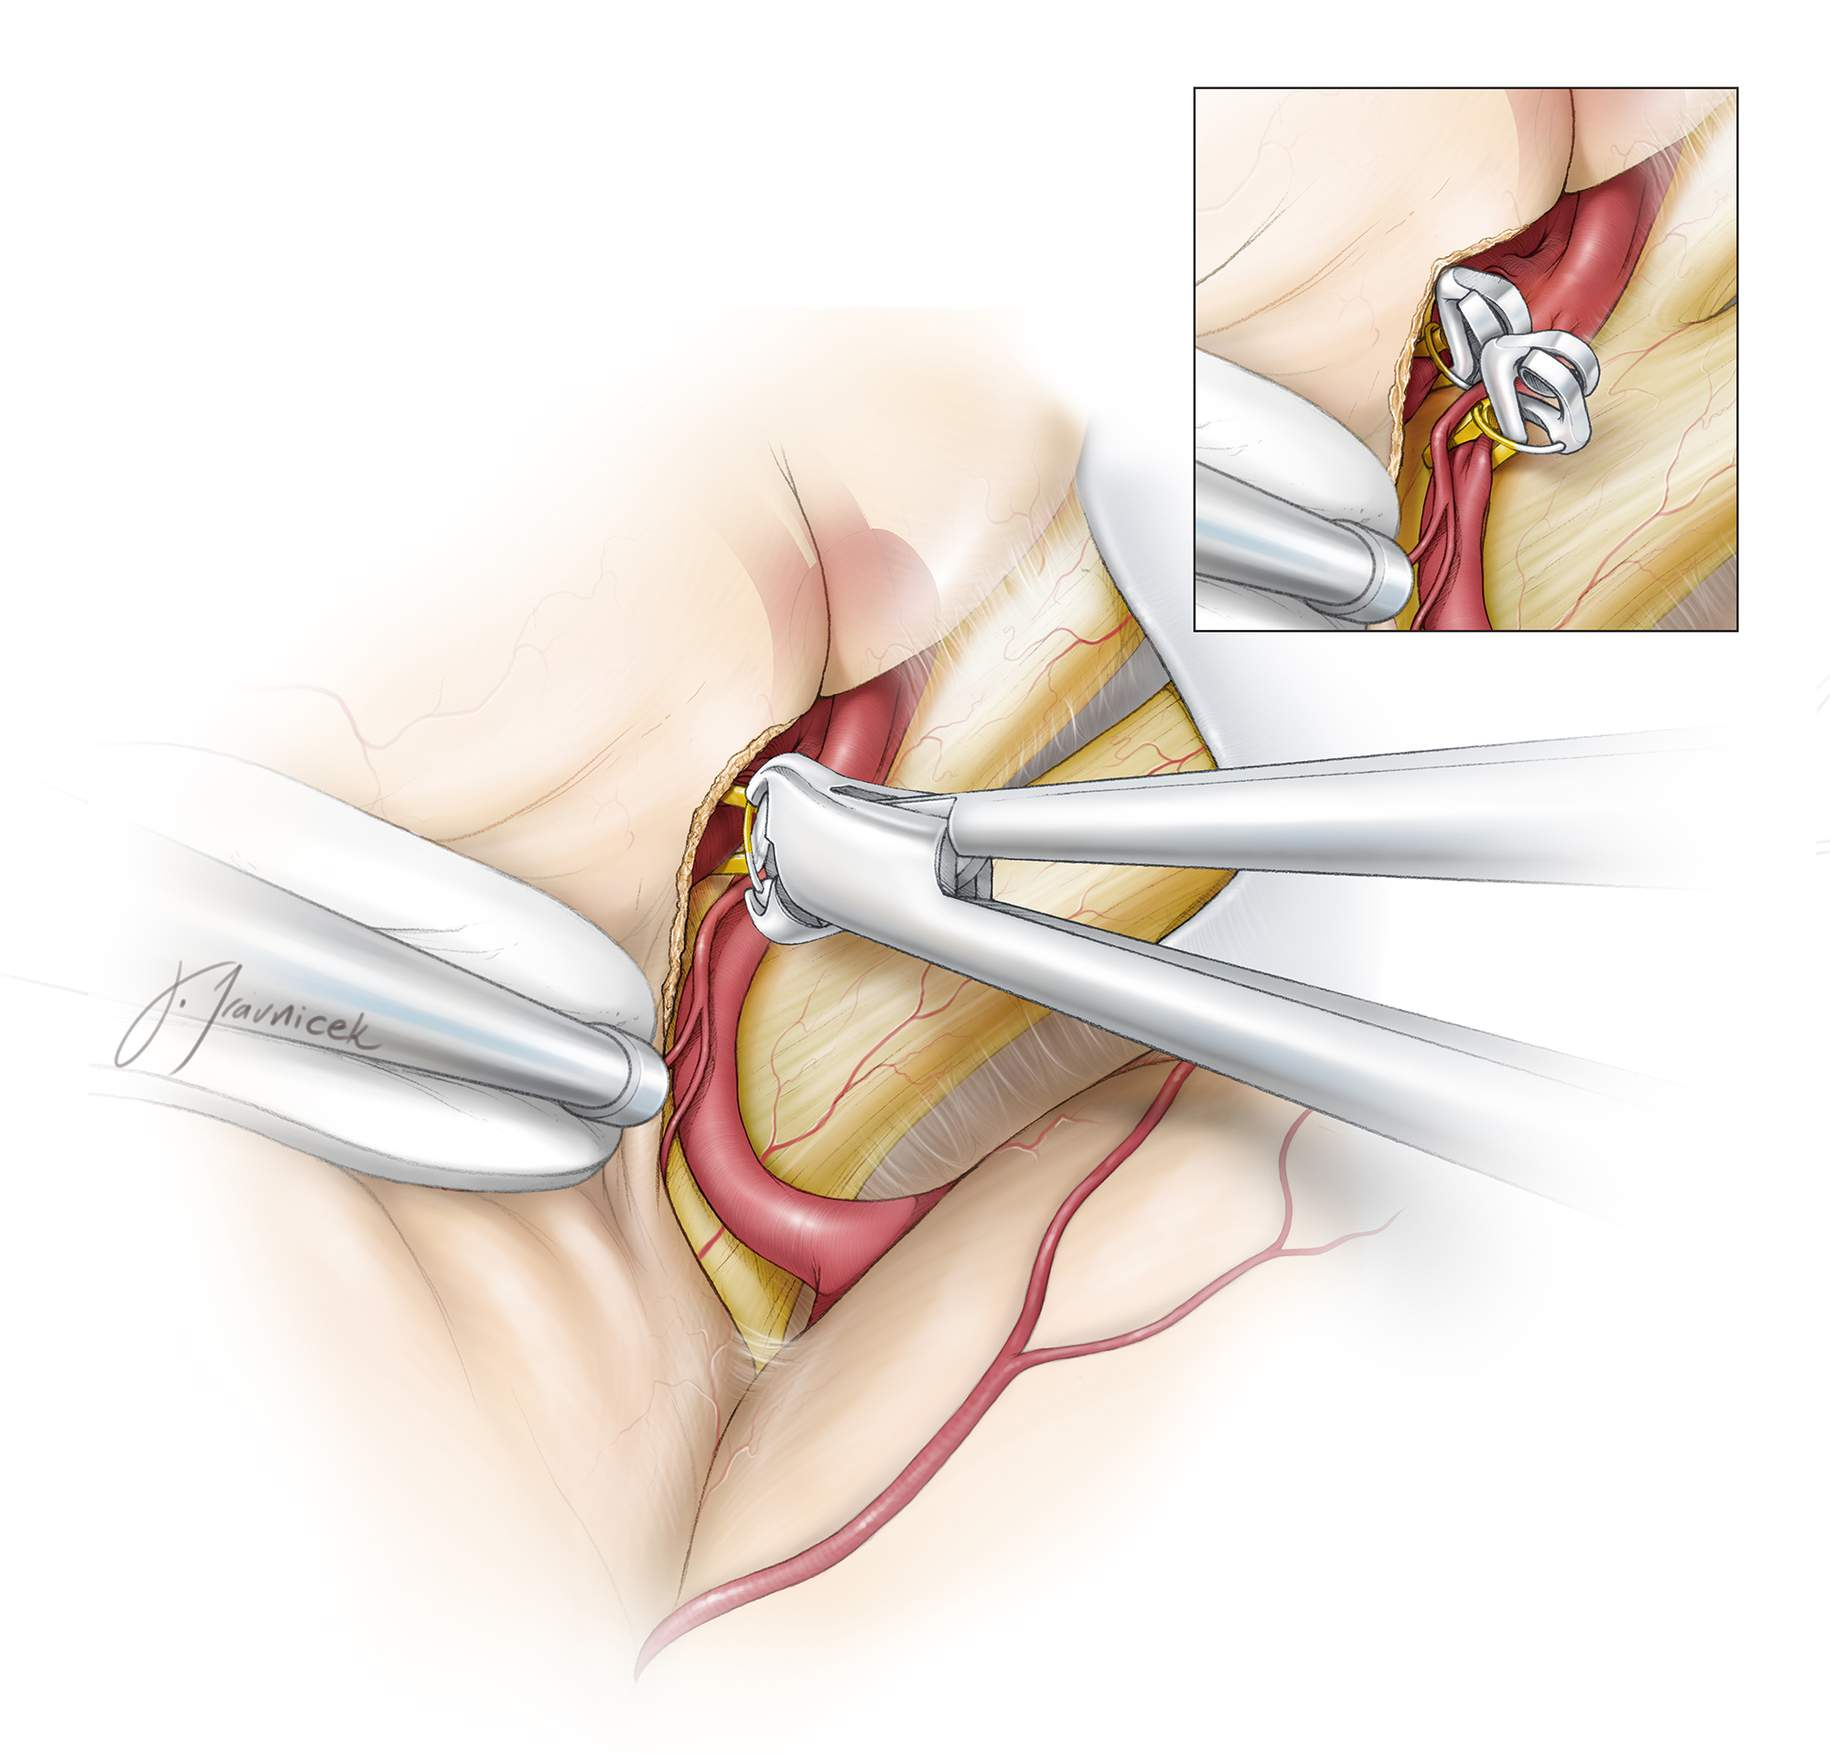 Figure 11: Temporary clips may be applied on either or both of the A1 segments at any time during the surgery. I prefer to secure contralateral control early, given that application of a clip onto the contralateral A1 is technically challenging if there is an intraoperative rupture. Care should be taken to position the clip's spring system away from the operative view of the ACoA complex. Commonly, a slightly curved temporary clip is useful for this purpose.  Application of one temporary clip on the dominant A1 is all that is needed to deflate the aneurysm enough while maintaining some flow within the ACA complex.